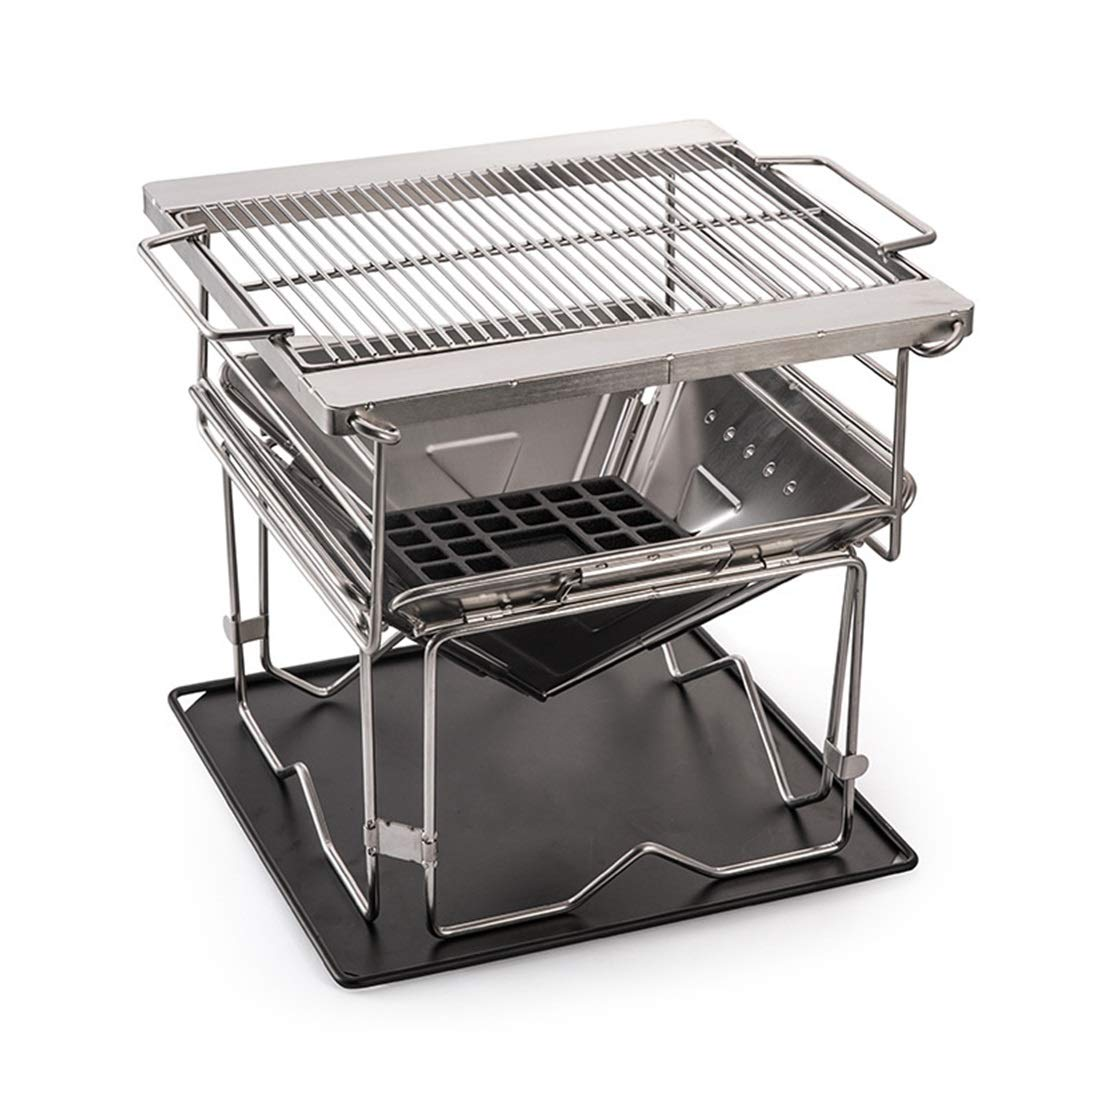 Vfdsvbdv Stainless Steel Grill Folding Portable Grill Thick Stove - Camping and Trailing (Size : One Size)